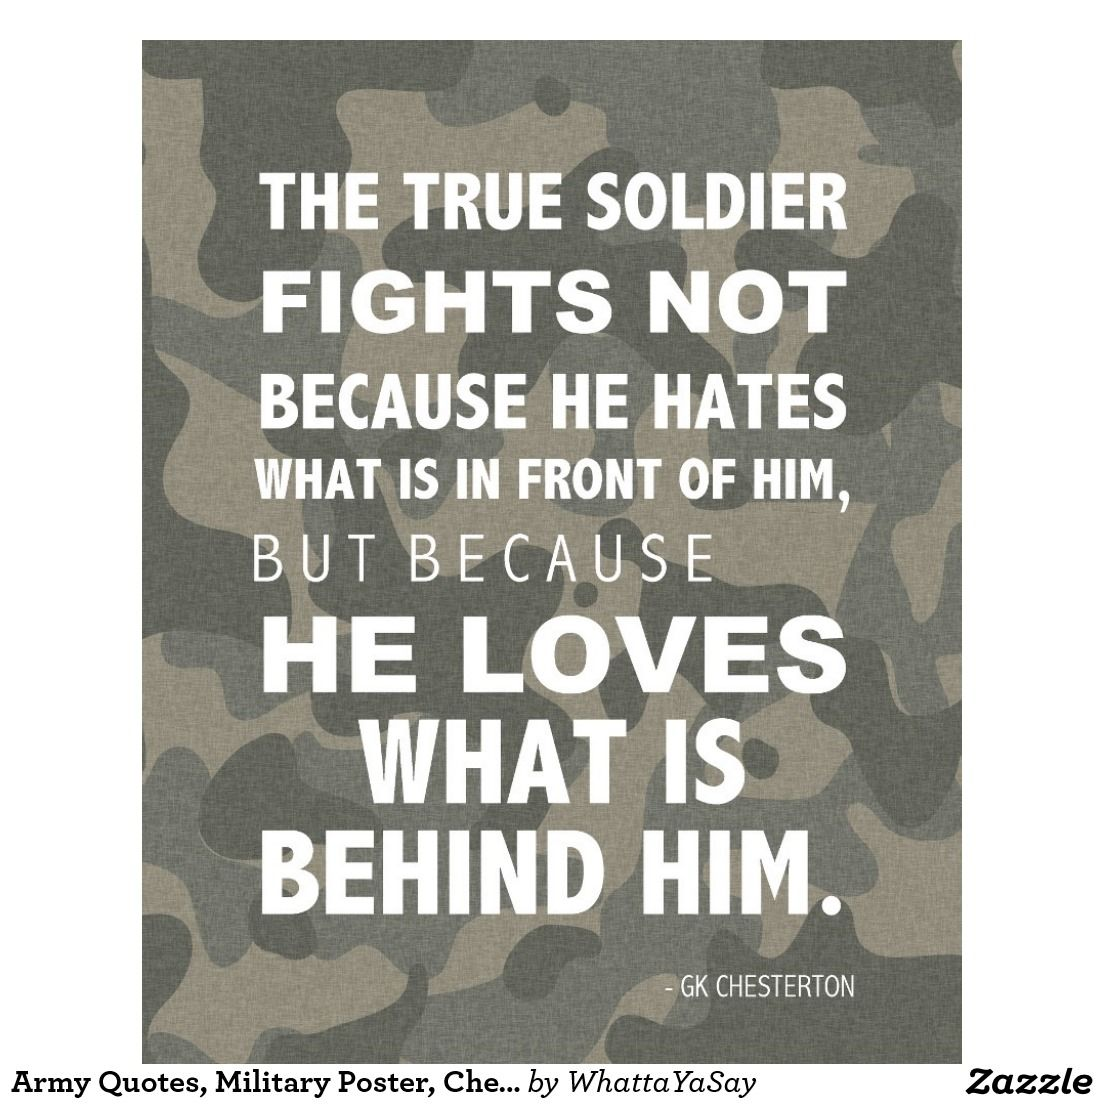 Military Inspirational Quotes Military Quotes  Google Search  Military  Pinterest